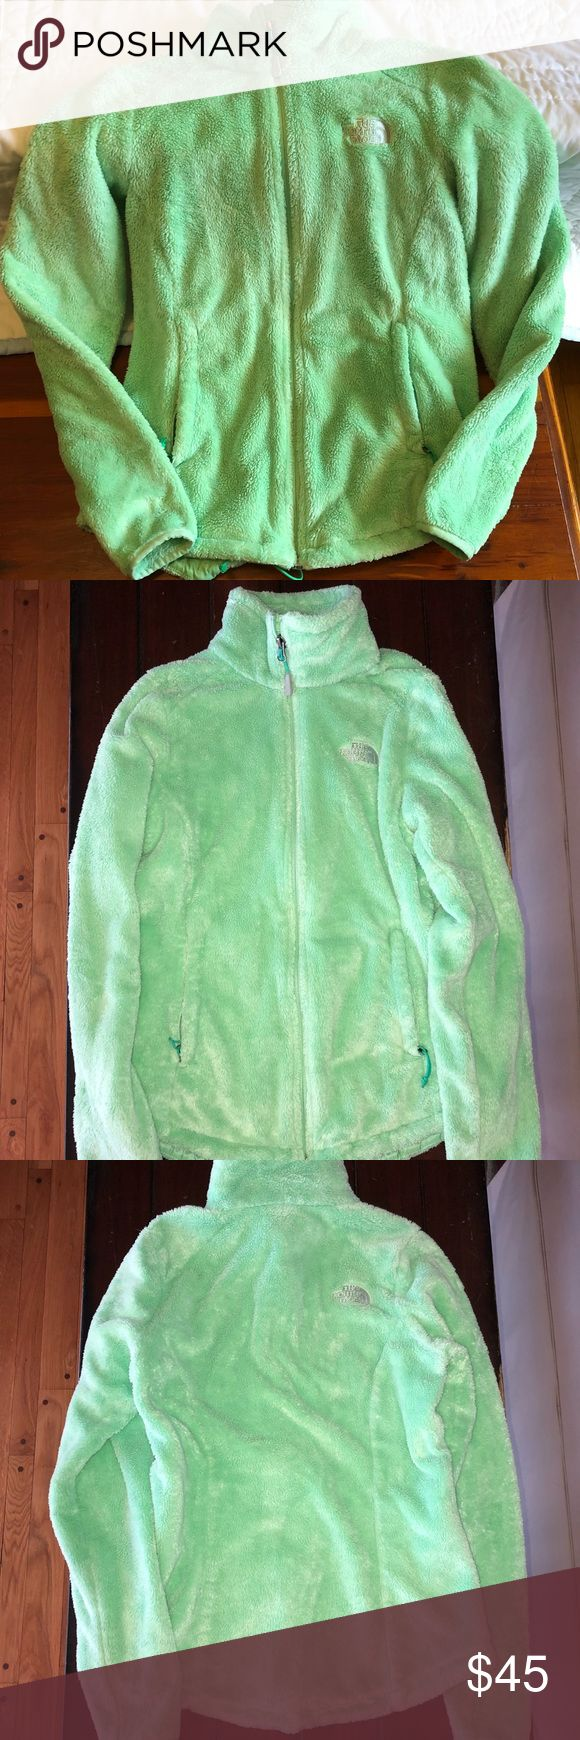 Women's North Face XSmall Fuzzy Fleece Jacket Super cute in lime green!! Gently worn with no holes, rips, or stains. Fuzzy fleece 100% Polyester. All zippers work. 2 outside pockets for hands and 2 inside pockets for extra storage. No flaws. Make an offer! North Face Jackets & Coats